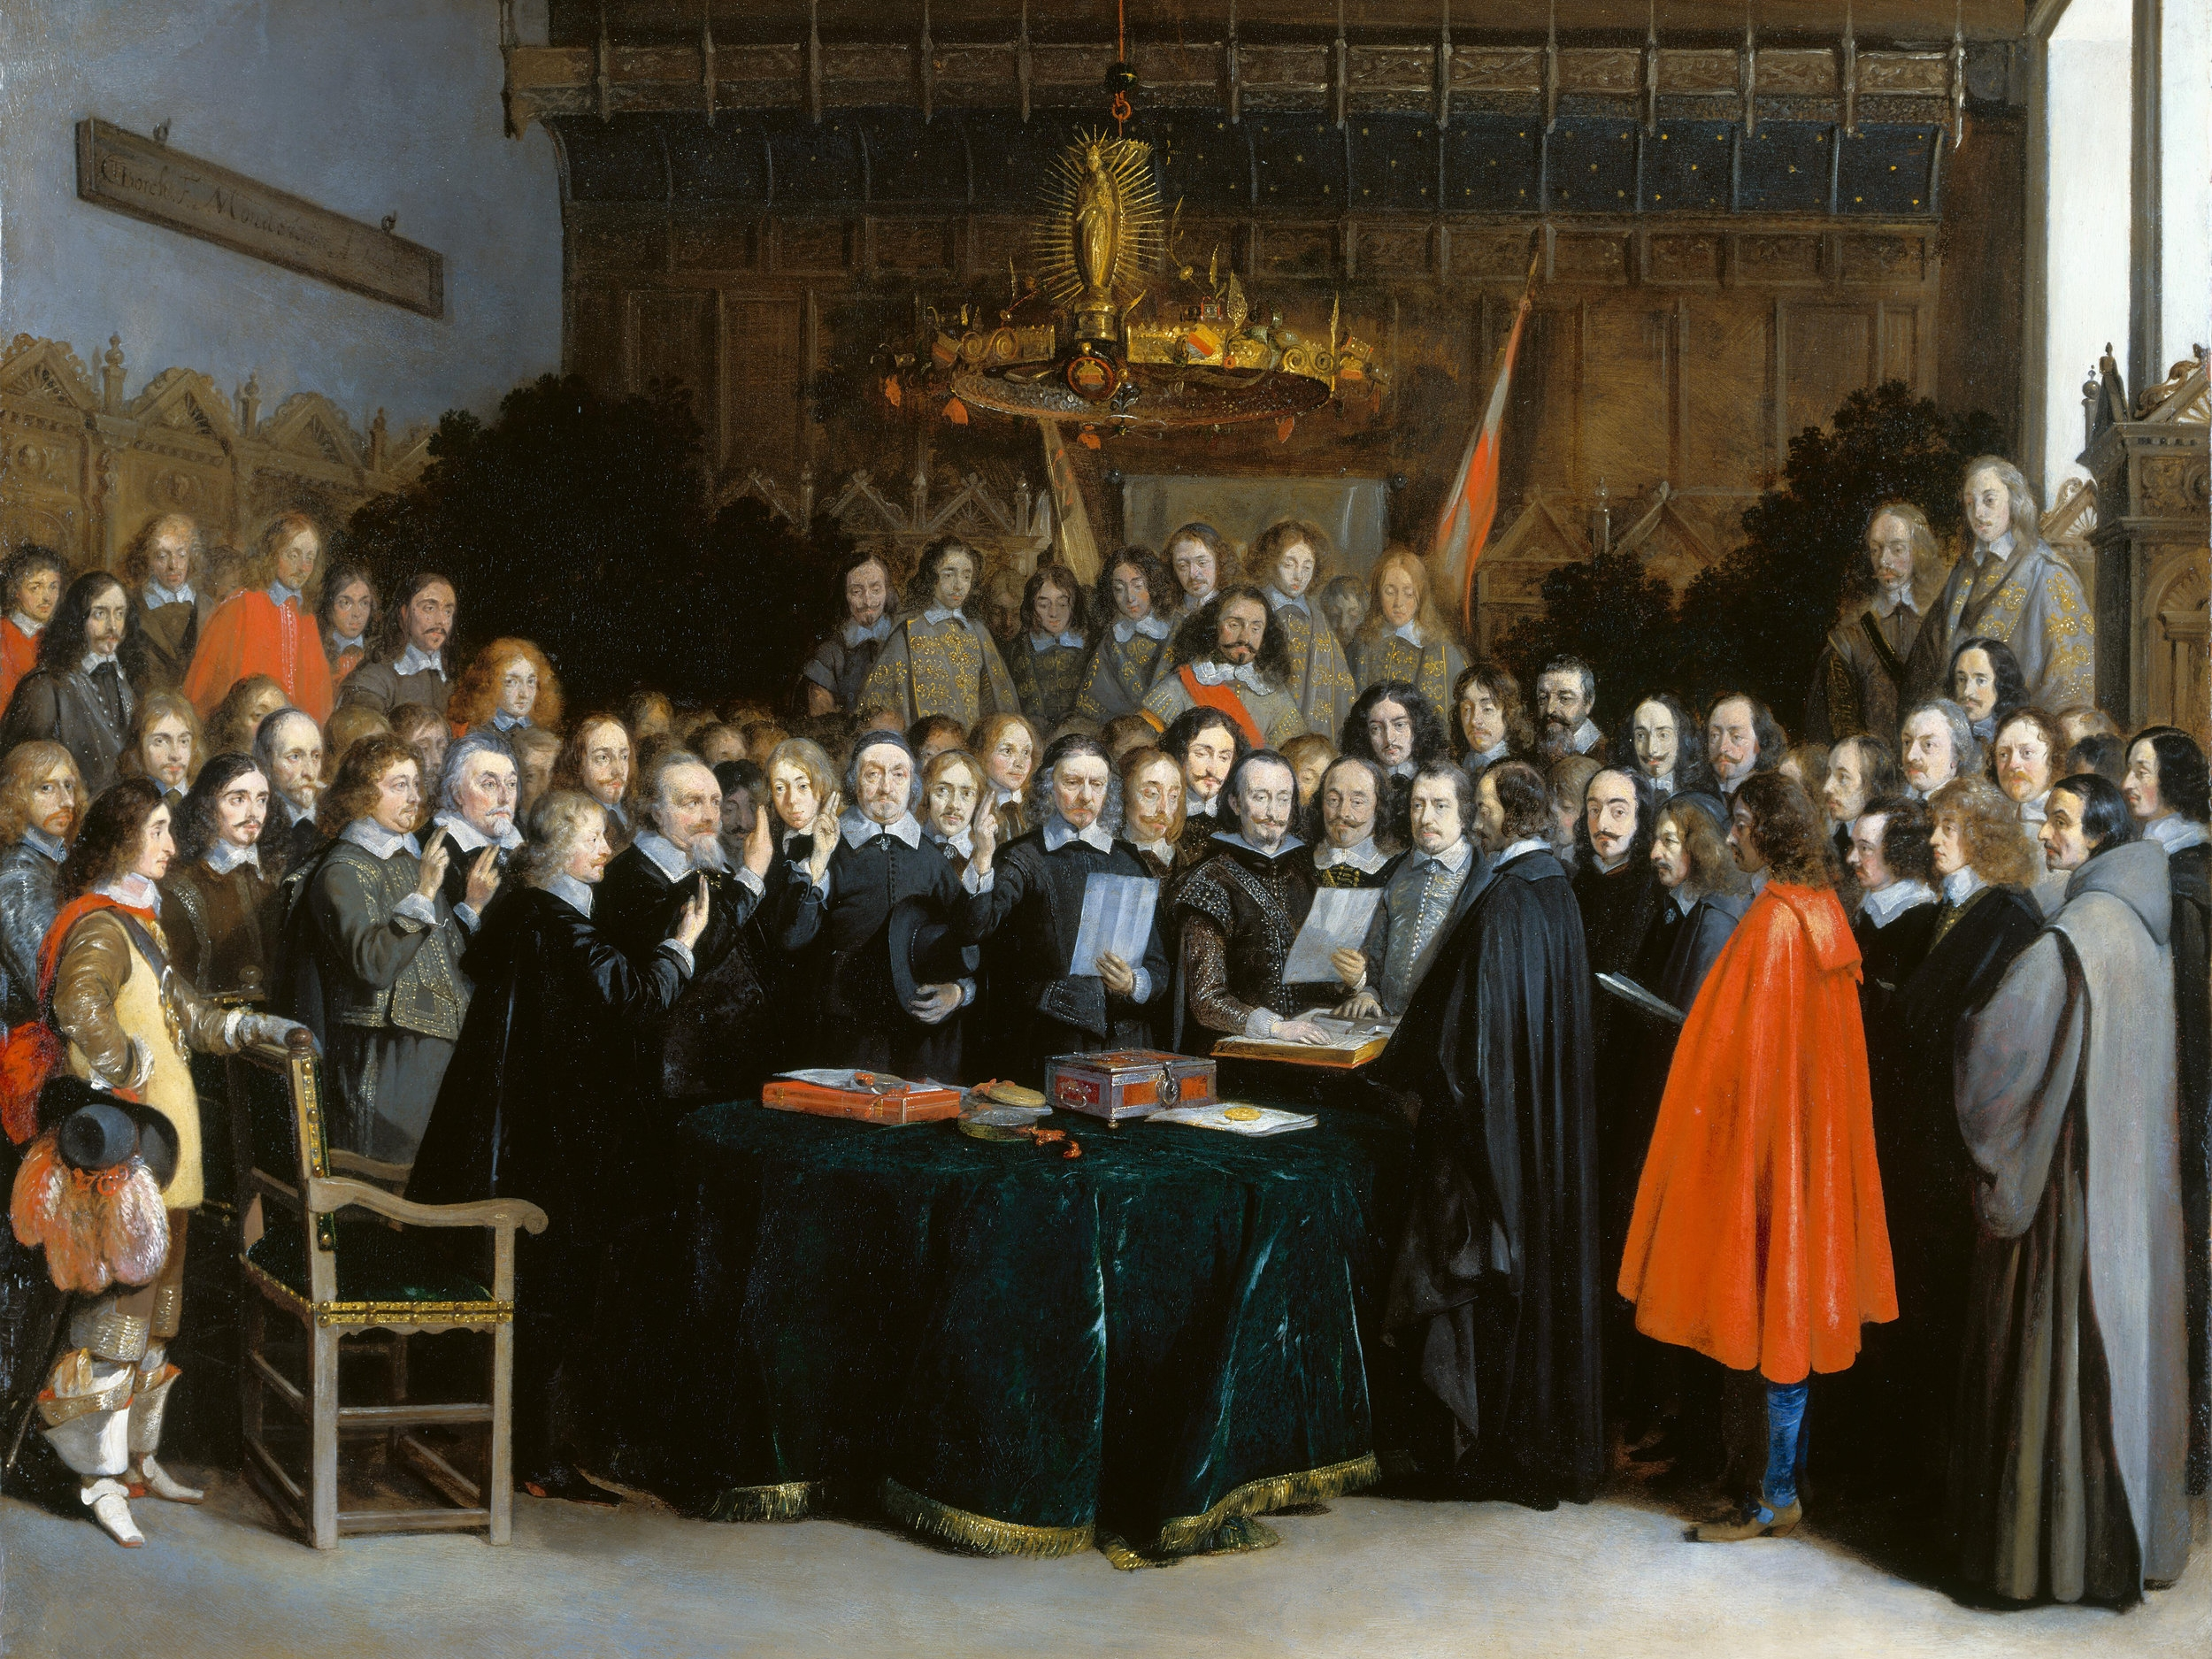 Bohemian Protestants feared losing their freedom because German King Ferdinand II wanted everyone Catholic. After riots, executions, The Thirty Year's War against protestant princes and their allied nations, the Peace of Westphalia in 1648 established the Westphalian System of Nation States.